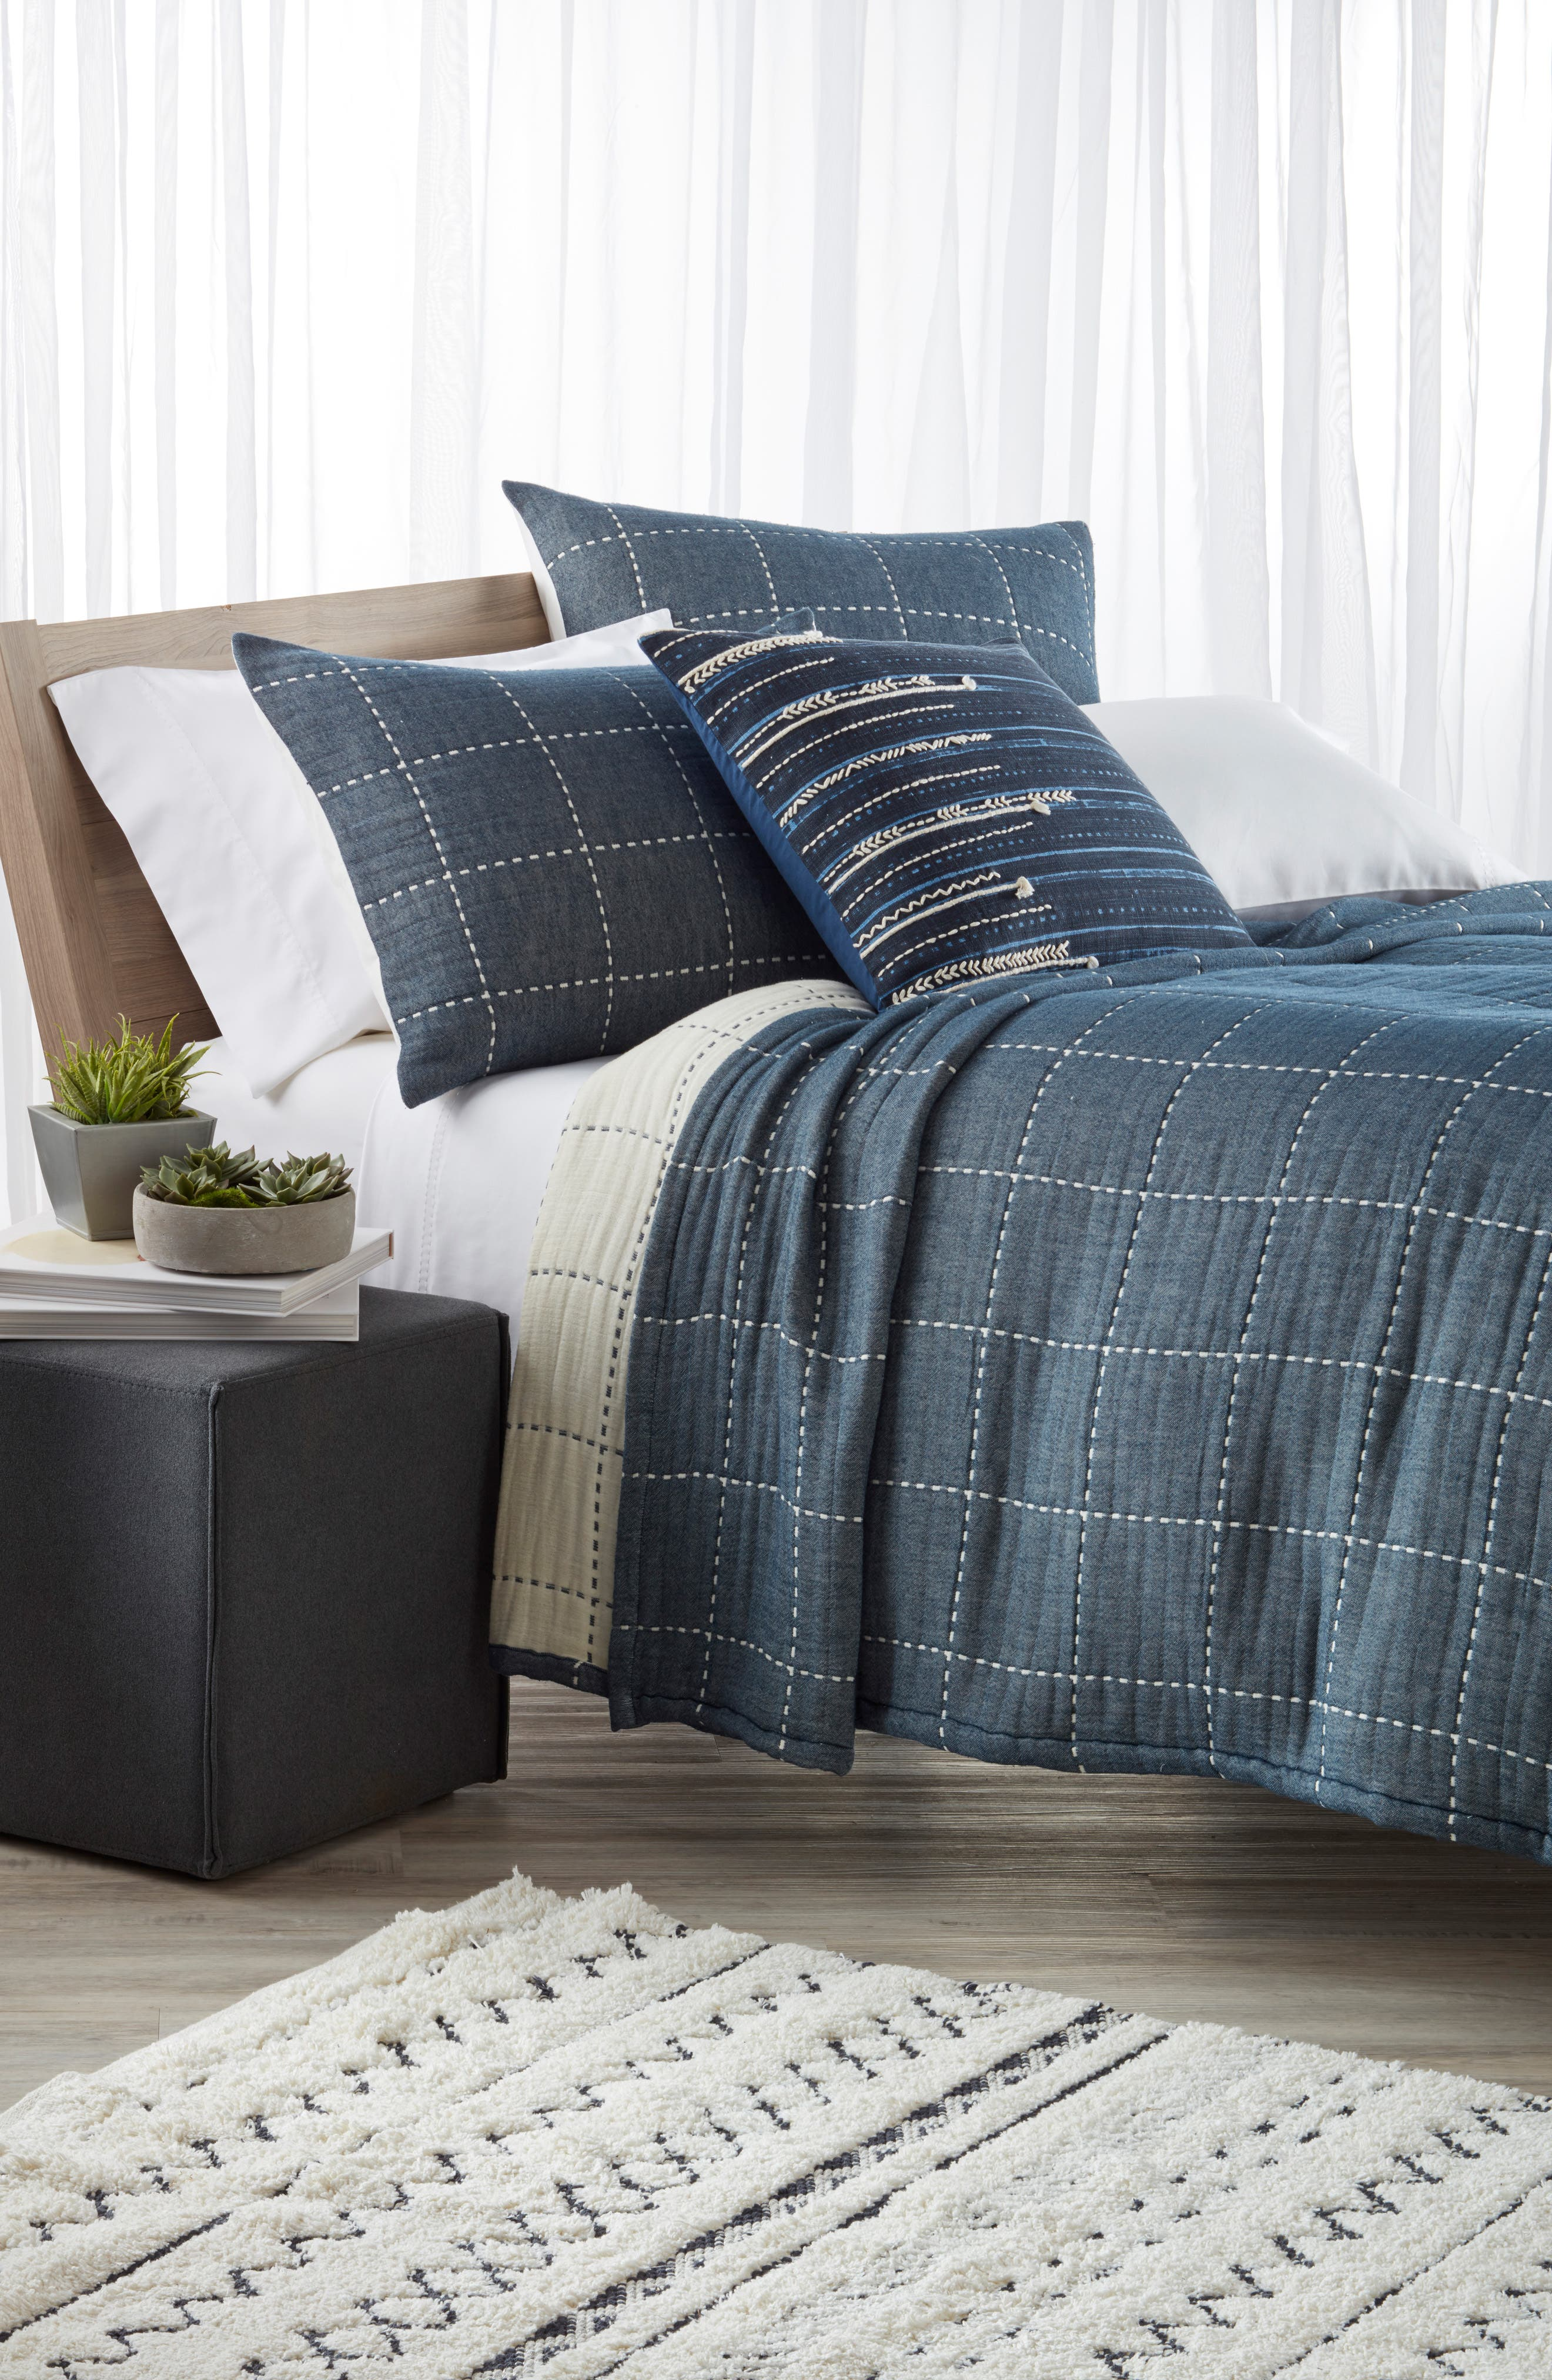 Levtex Windowpane Bedding Collection